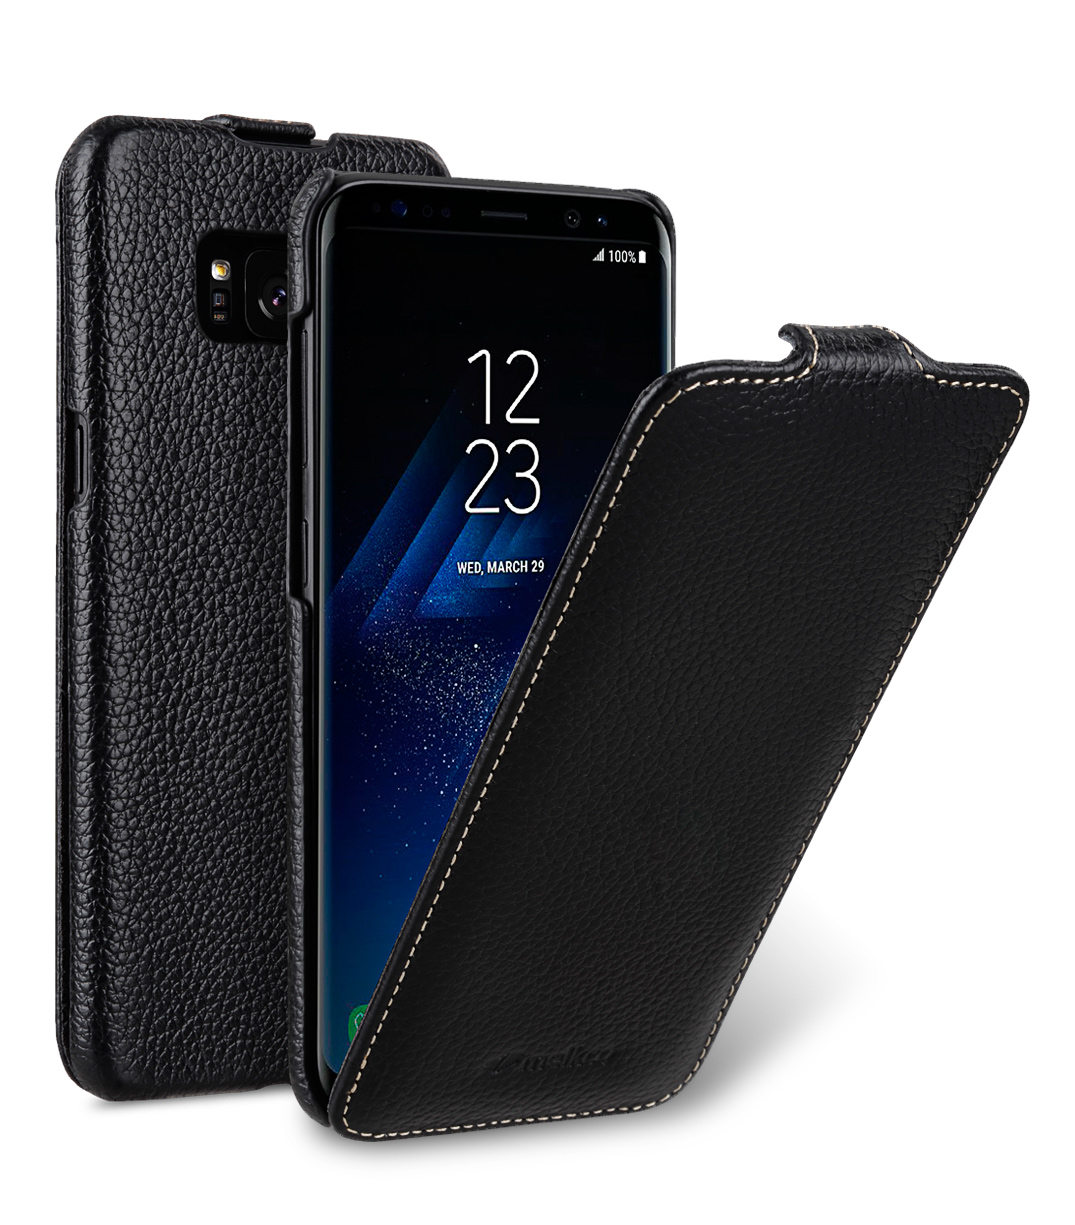 Melkco Premium Leather Case for Samsung Galaxy S8 - Jacka Type ( Black LC )